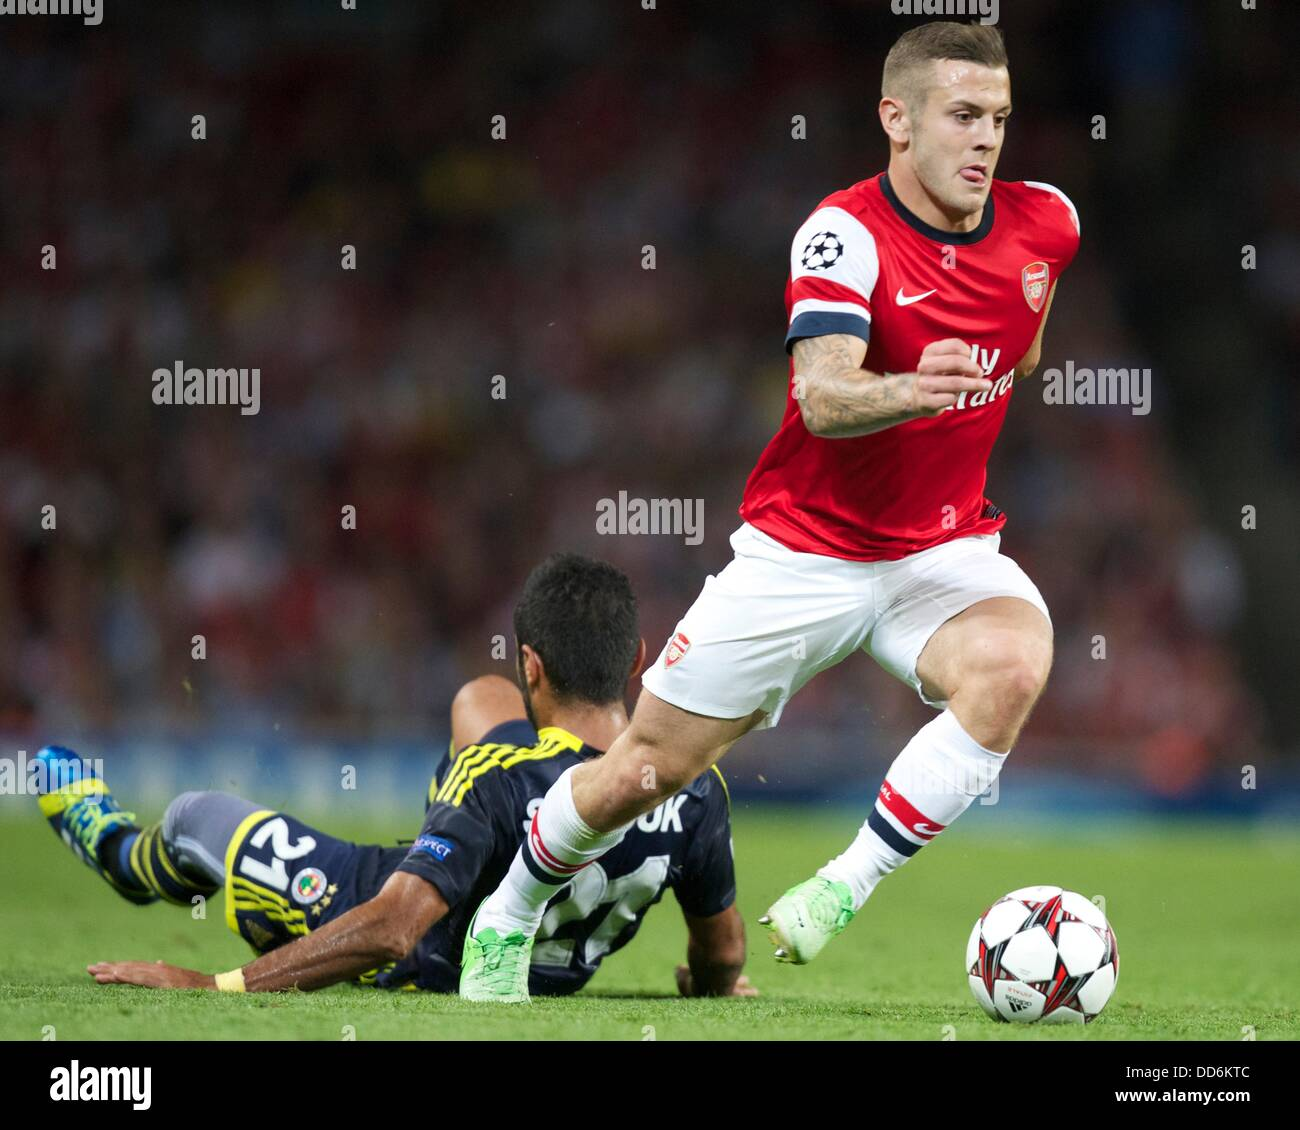 London, UK. 27th Aug, 2013. Jack Wilshere of Arsenal leaves Selcuk Sahin of Fenerbahce on the floor during the Champions - Stock Image